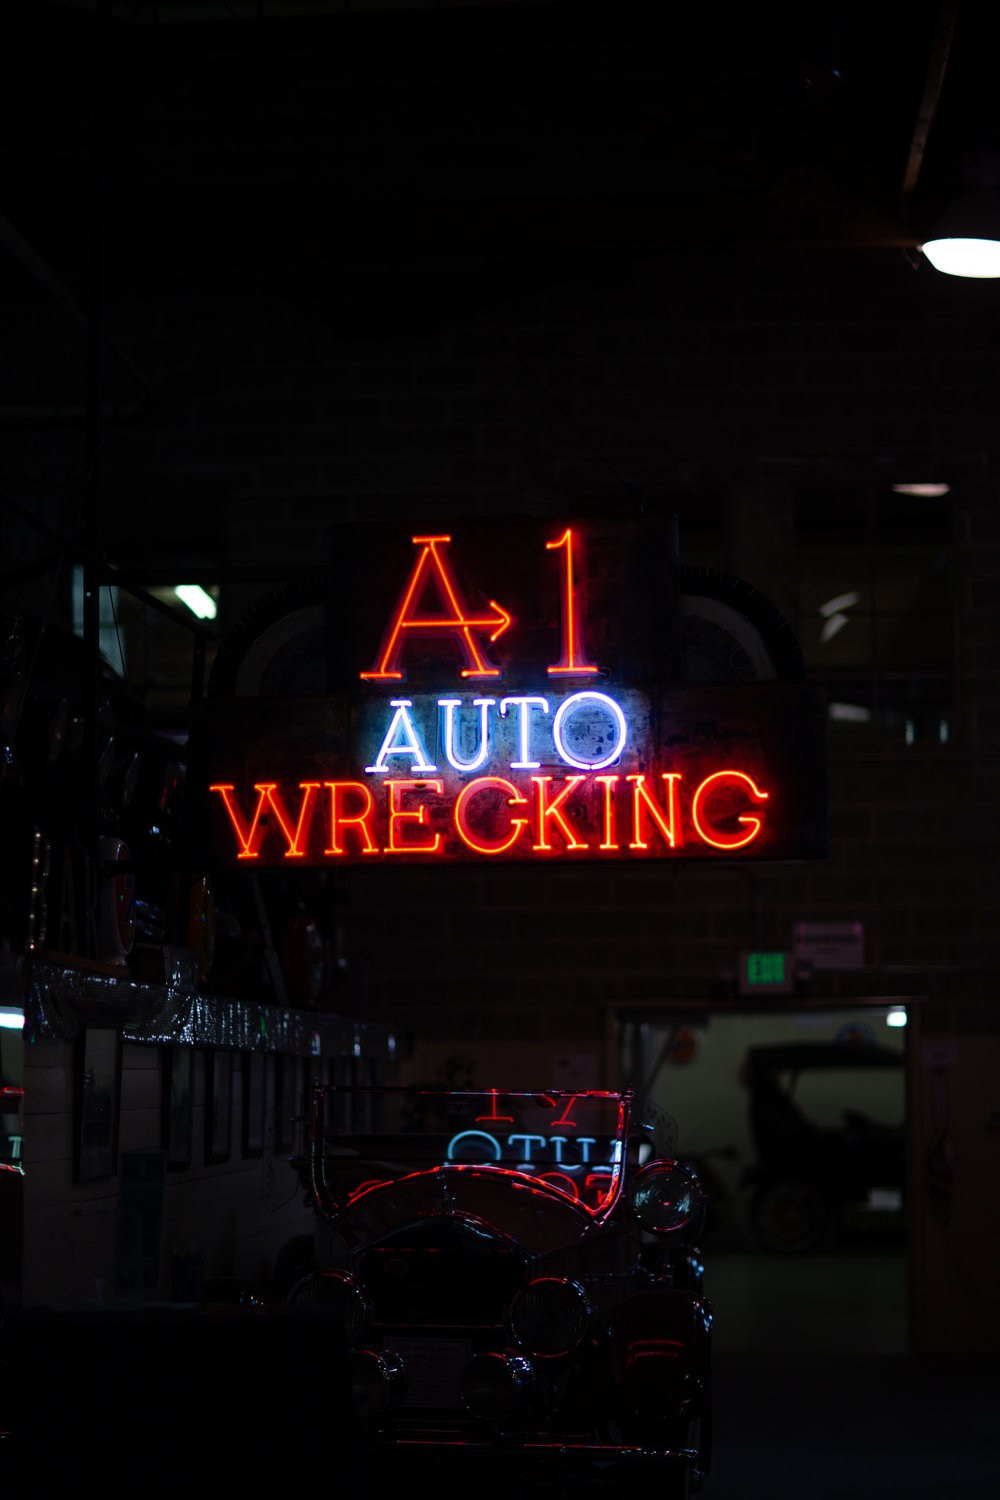 A-1 Auto Wrecking neon sign